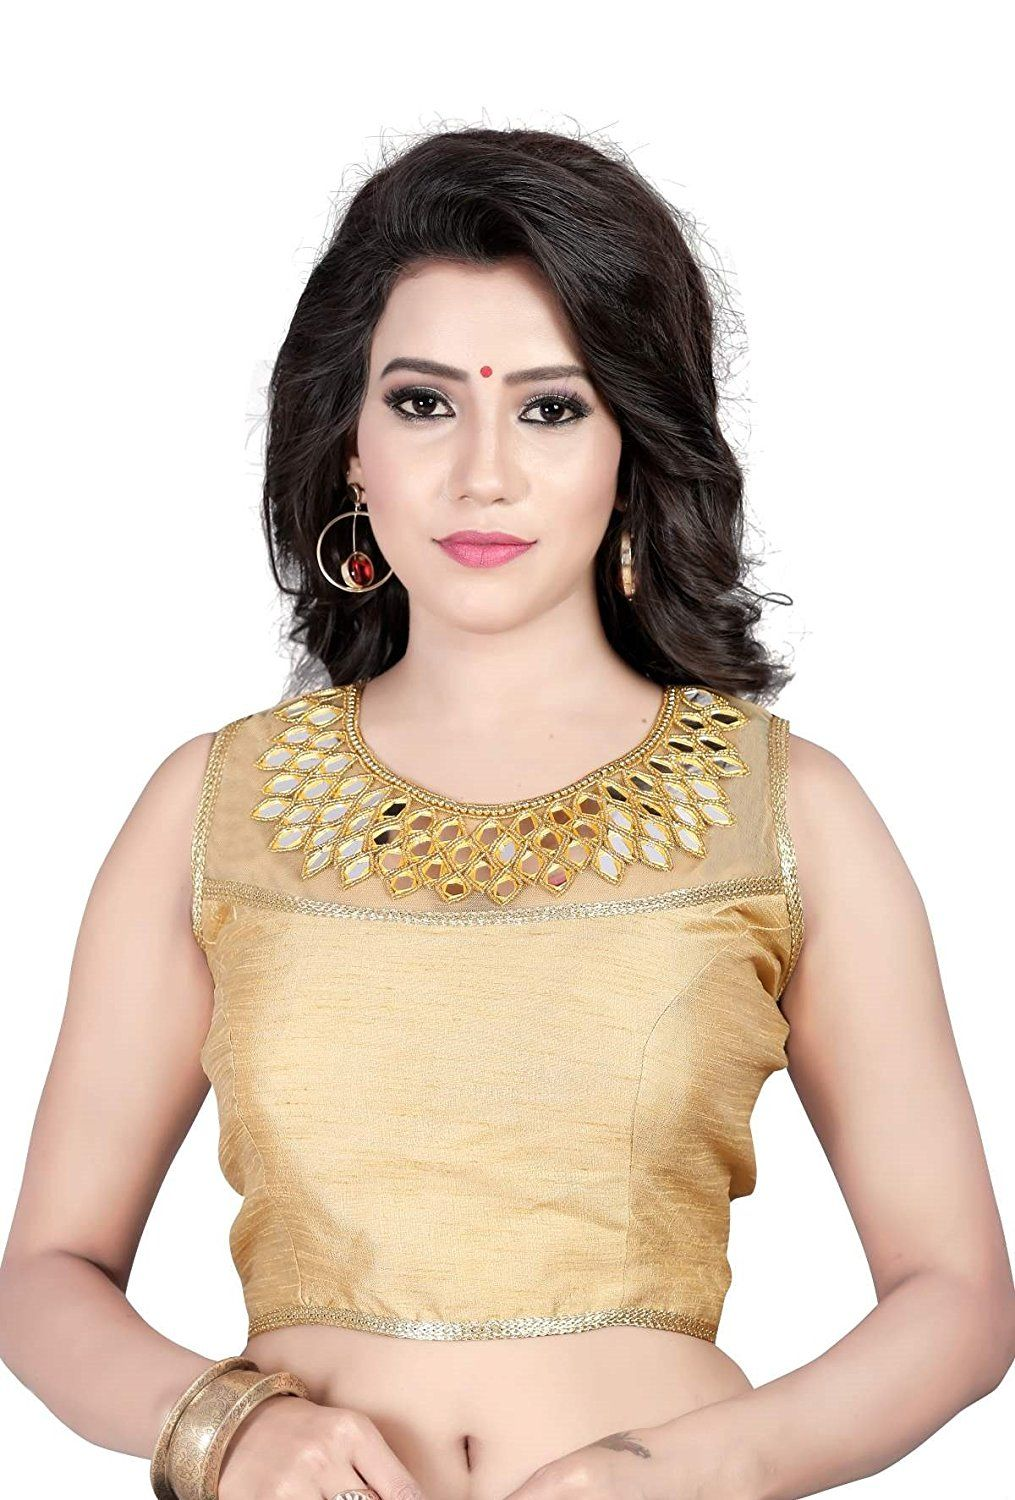 08c2faae4d6f7e Buy Kuvarba Fashion Golden Banglori Silk Blouses Online at Low prices in  India on Winsant